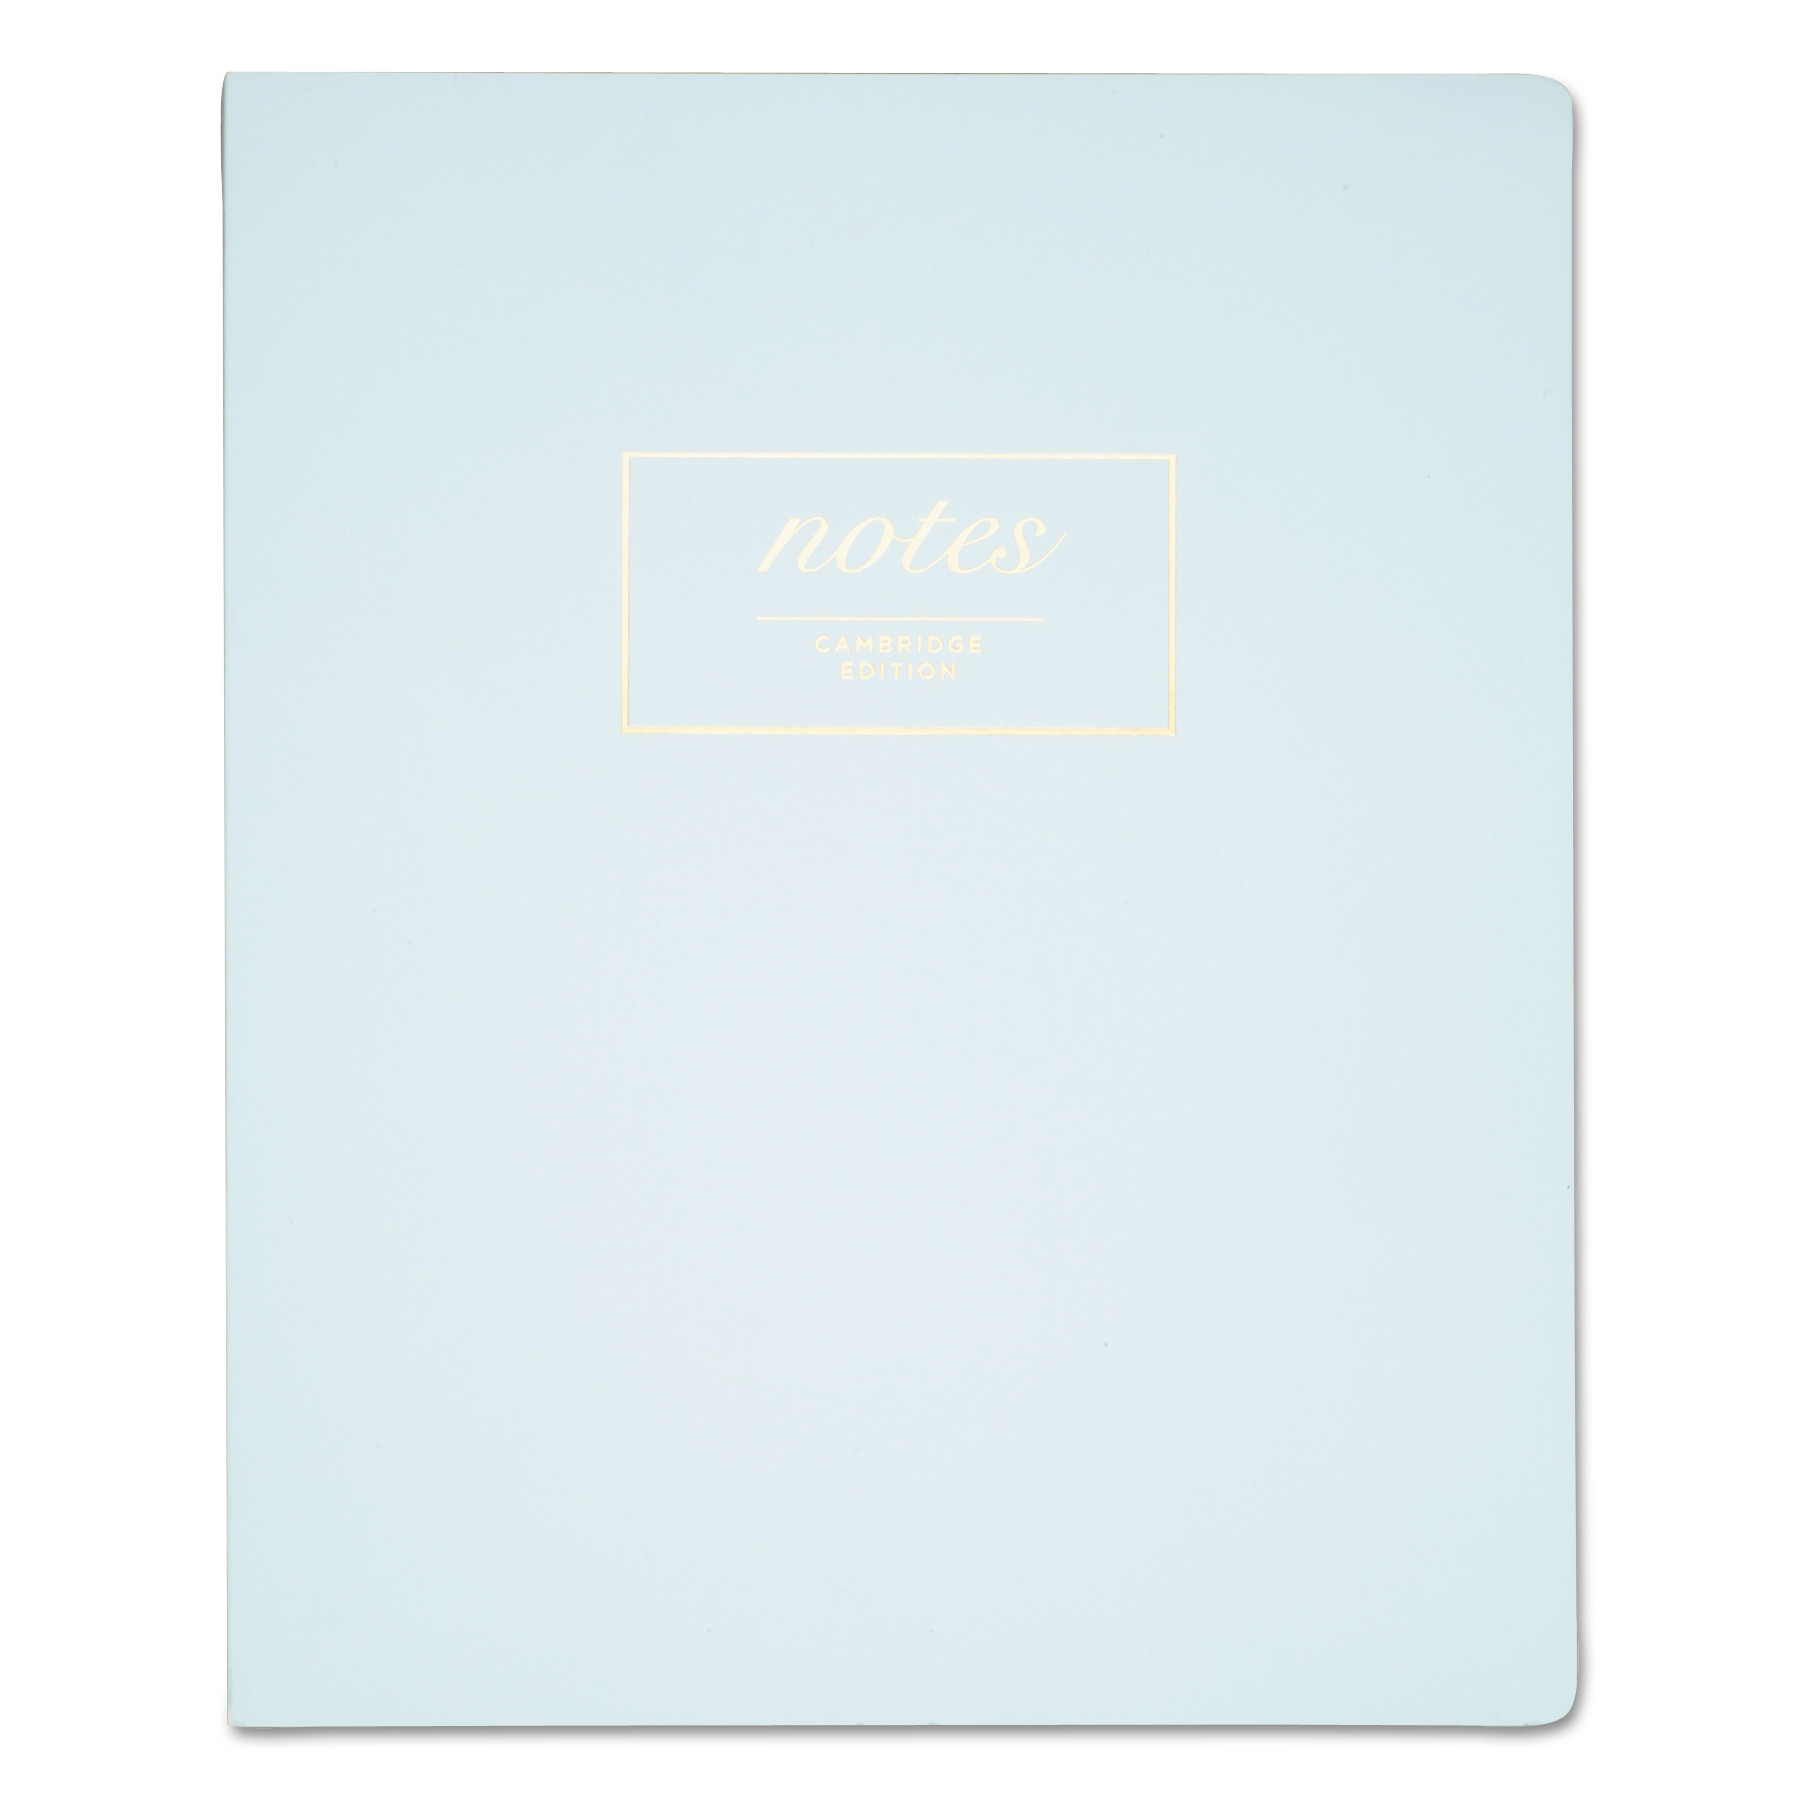 Workstyle Notebook, Legal Rule, Aqua Cover, 7 1/4 x 9 1/2, Perforated, 80 Pages